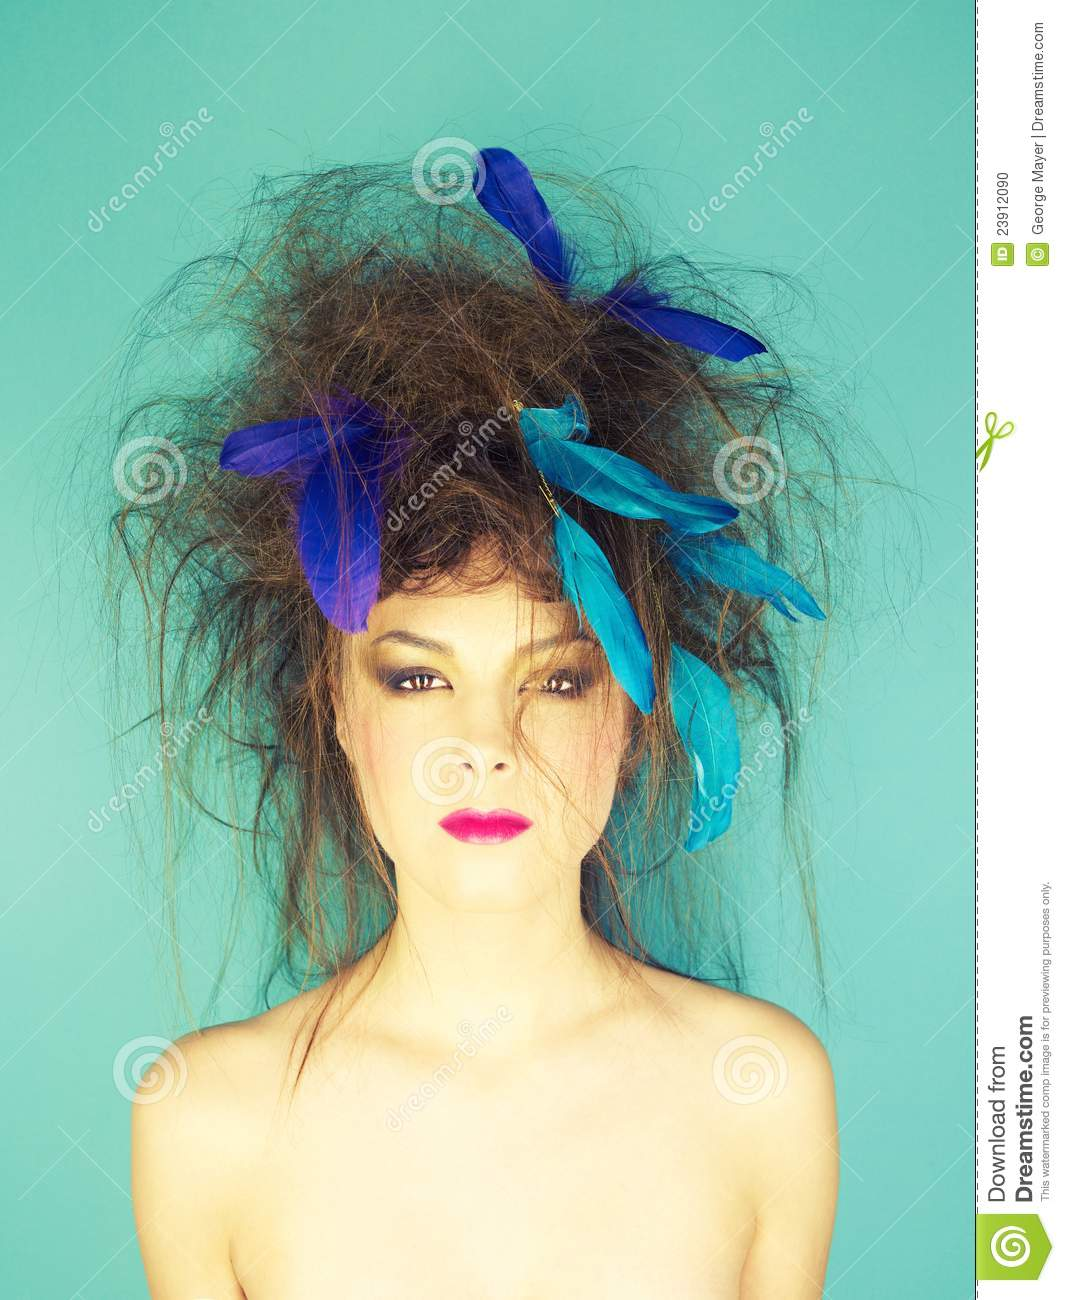 Woman With An Unusual Hairstyle Stock Photo - Image of backcombed ...